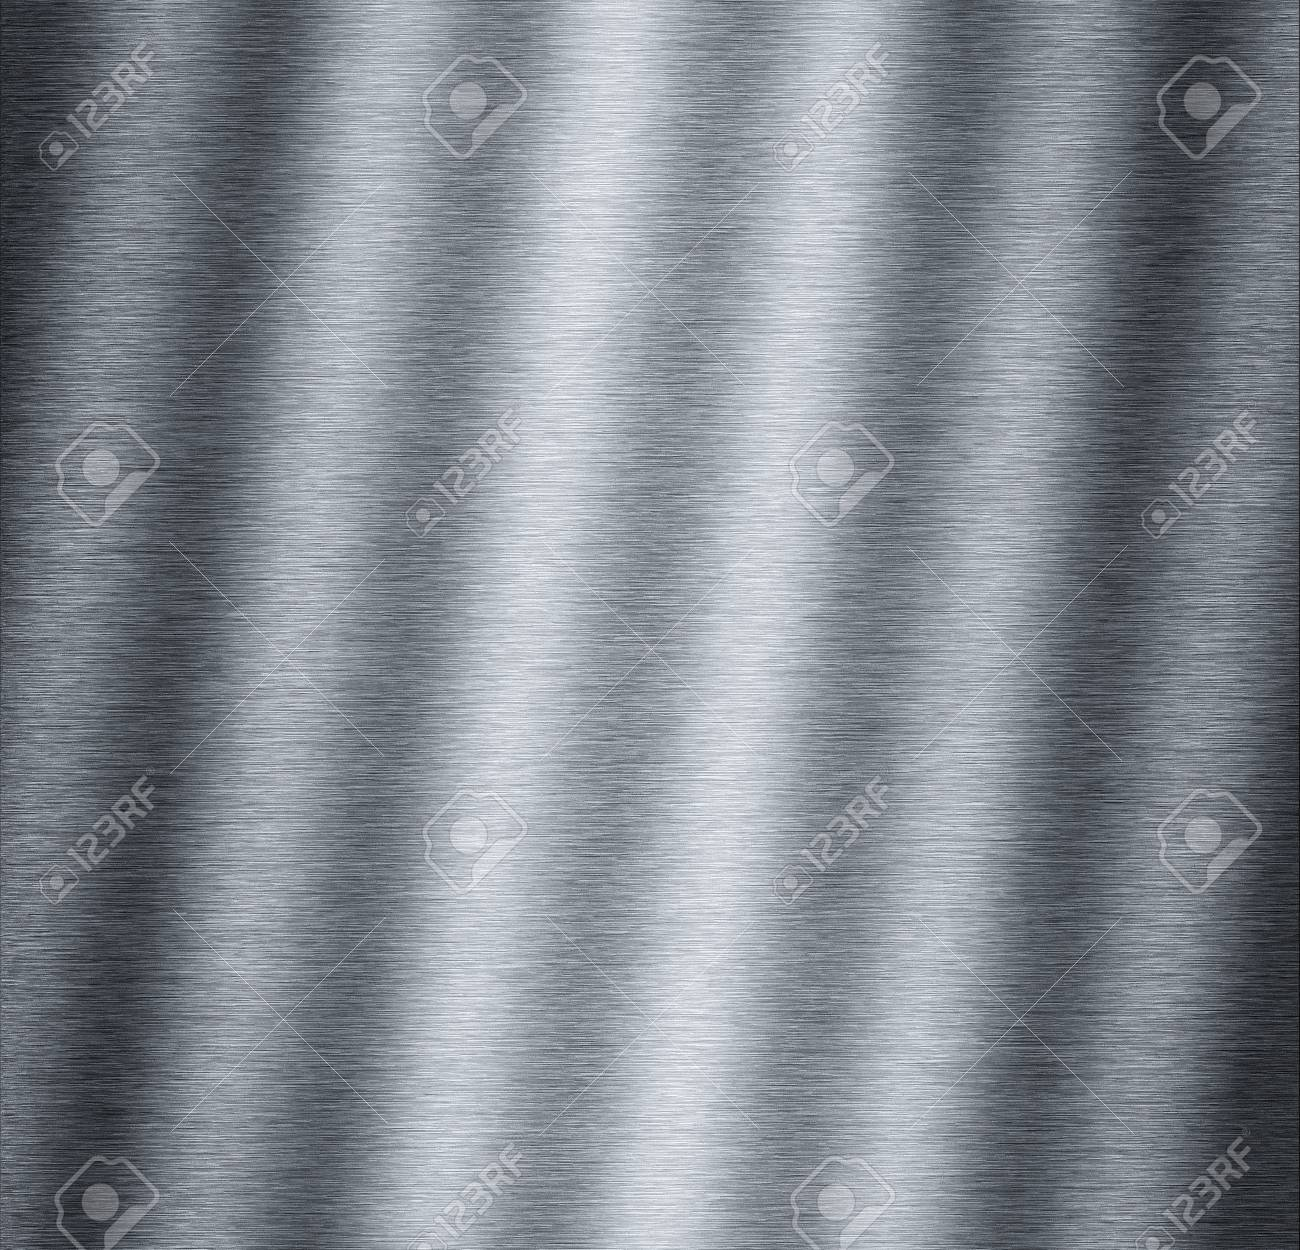 Waved aluminum metal plate useful for backgrounds Stock Photo - 9454848